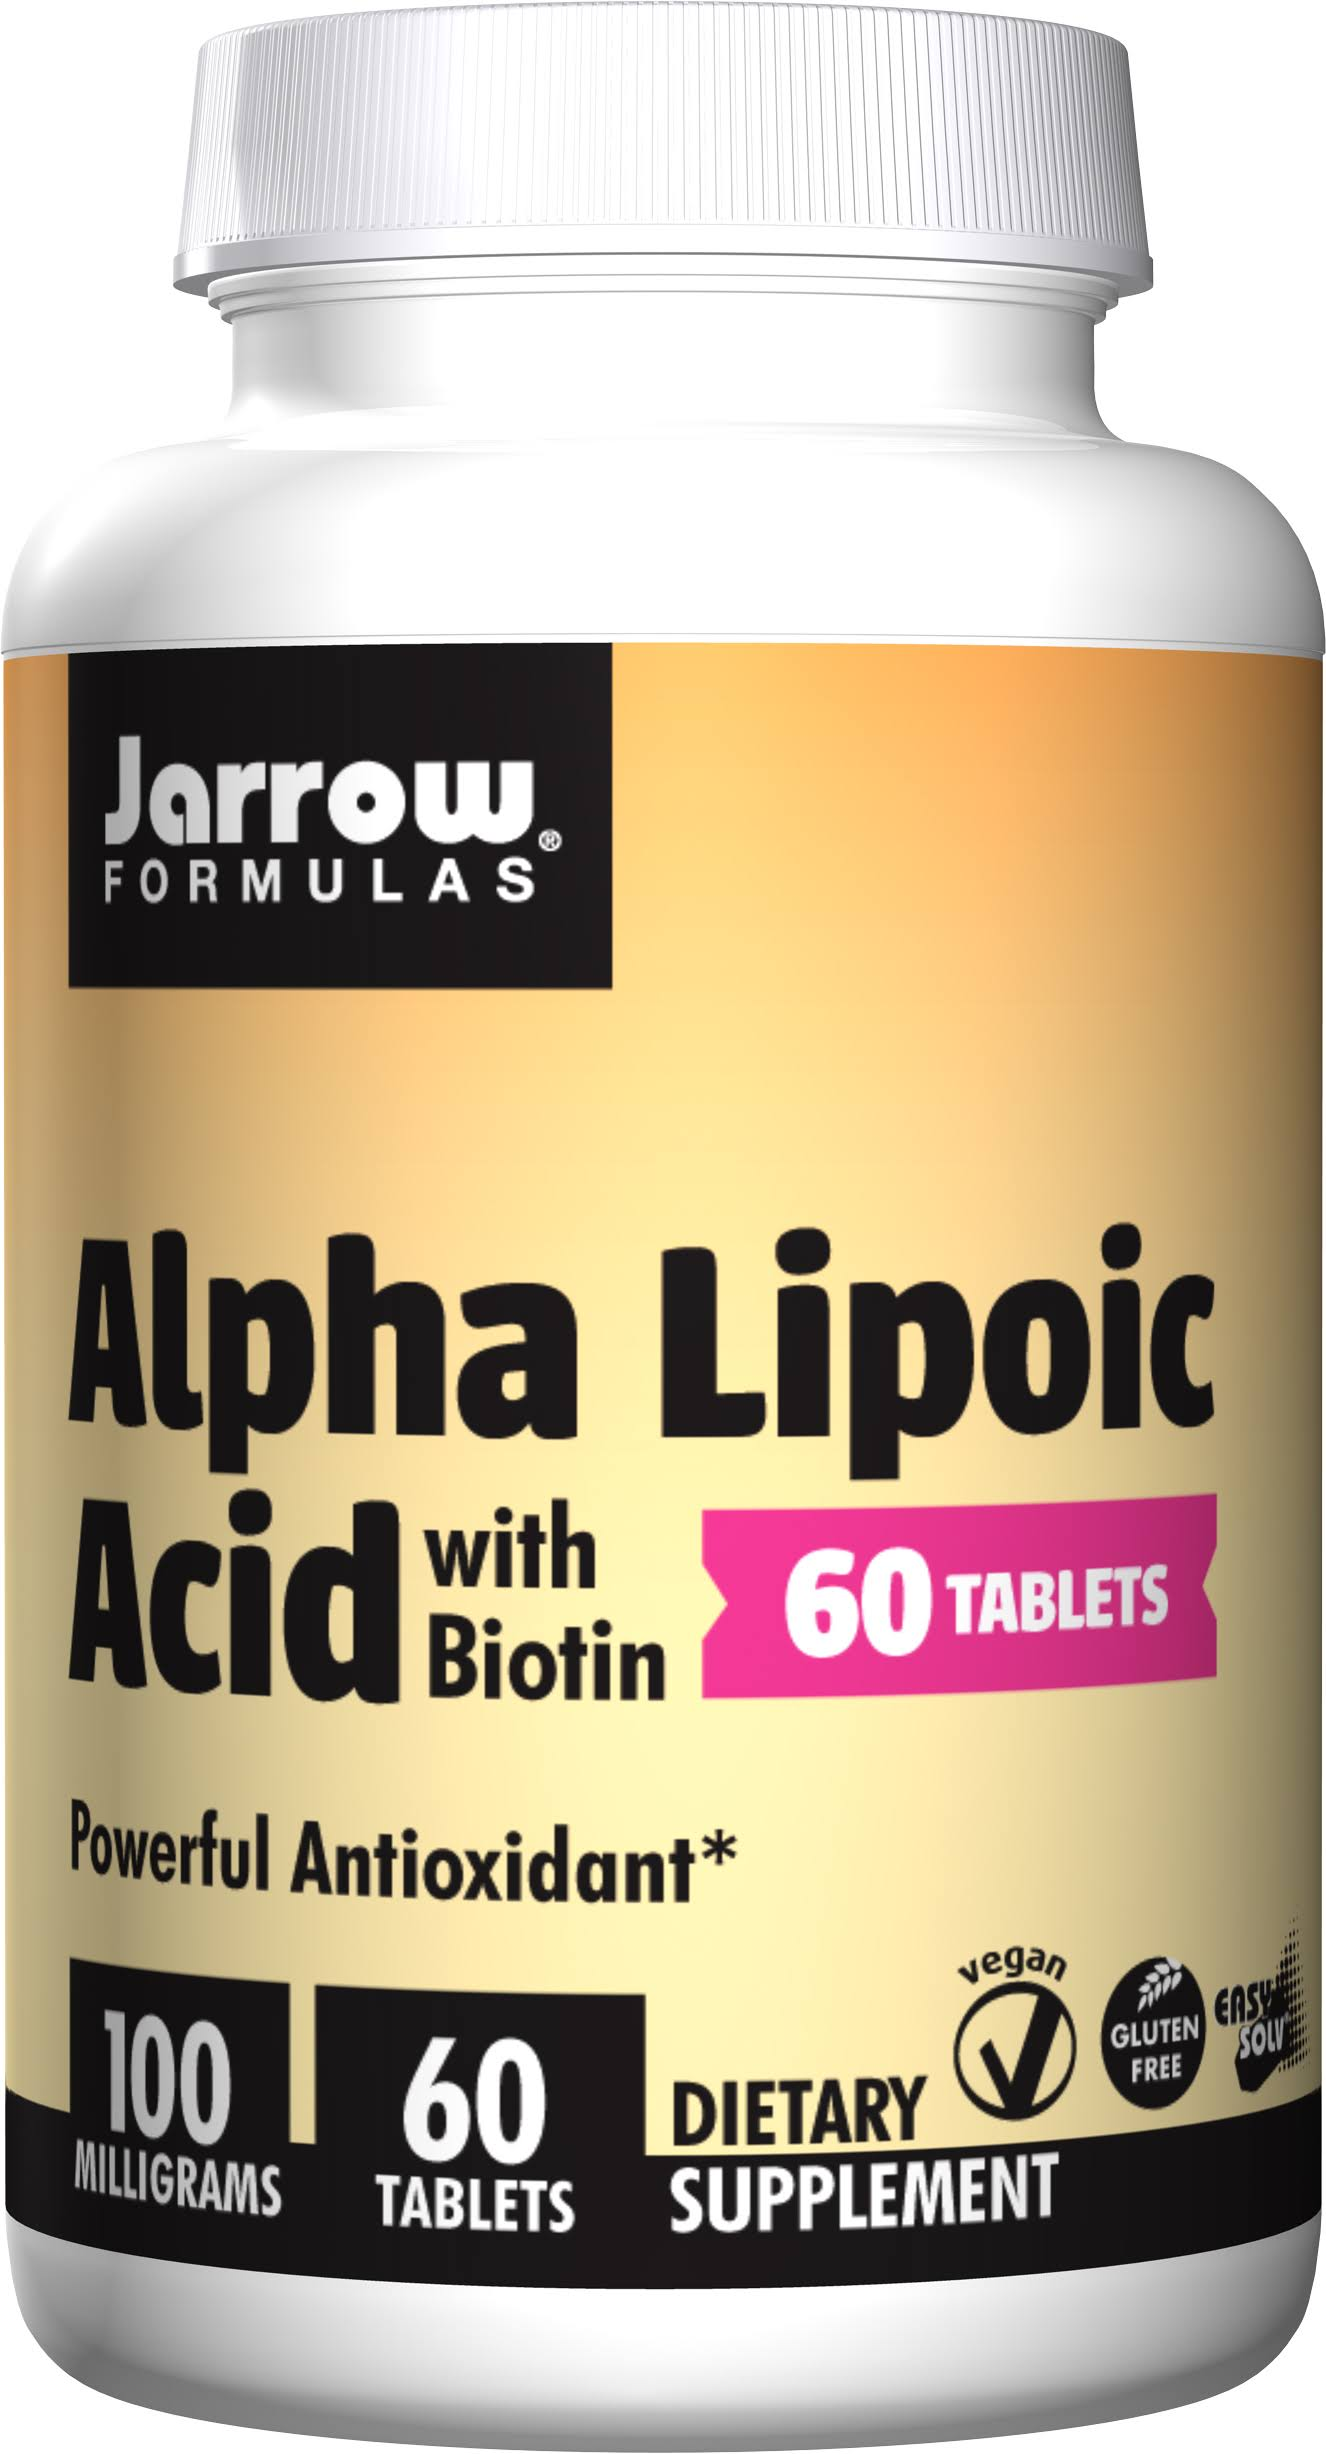 Jarrow Formulas Alpha Lipoic Acid With Biotin Supplement - 100mg, 60 Easy-Solv Tablets